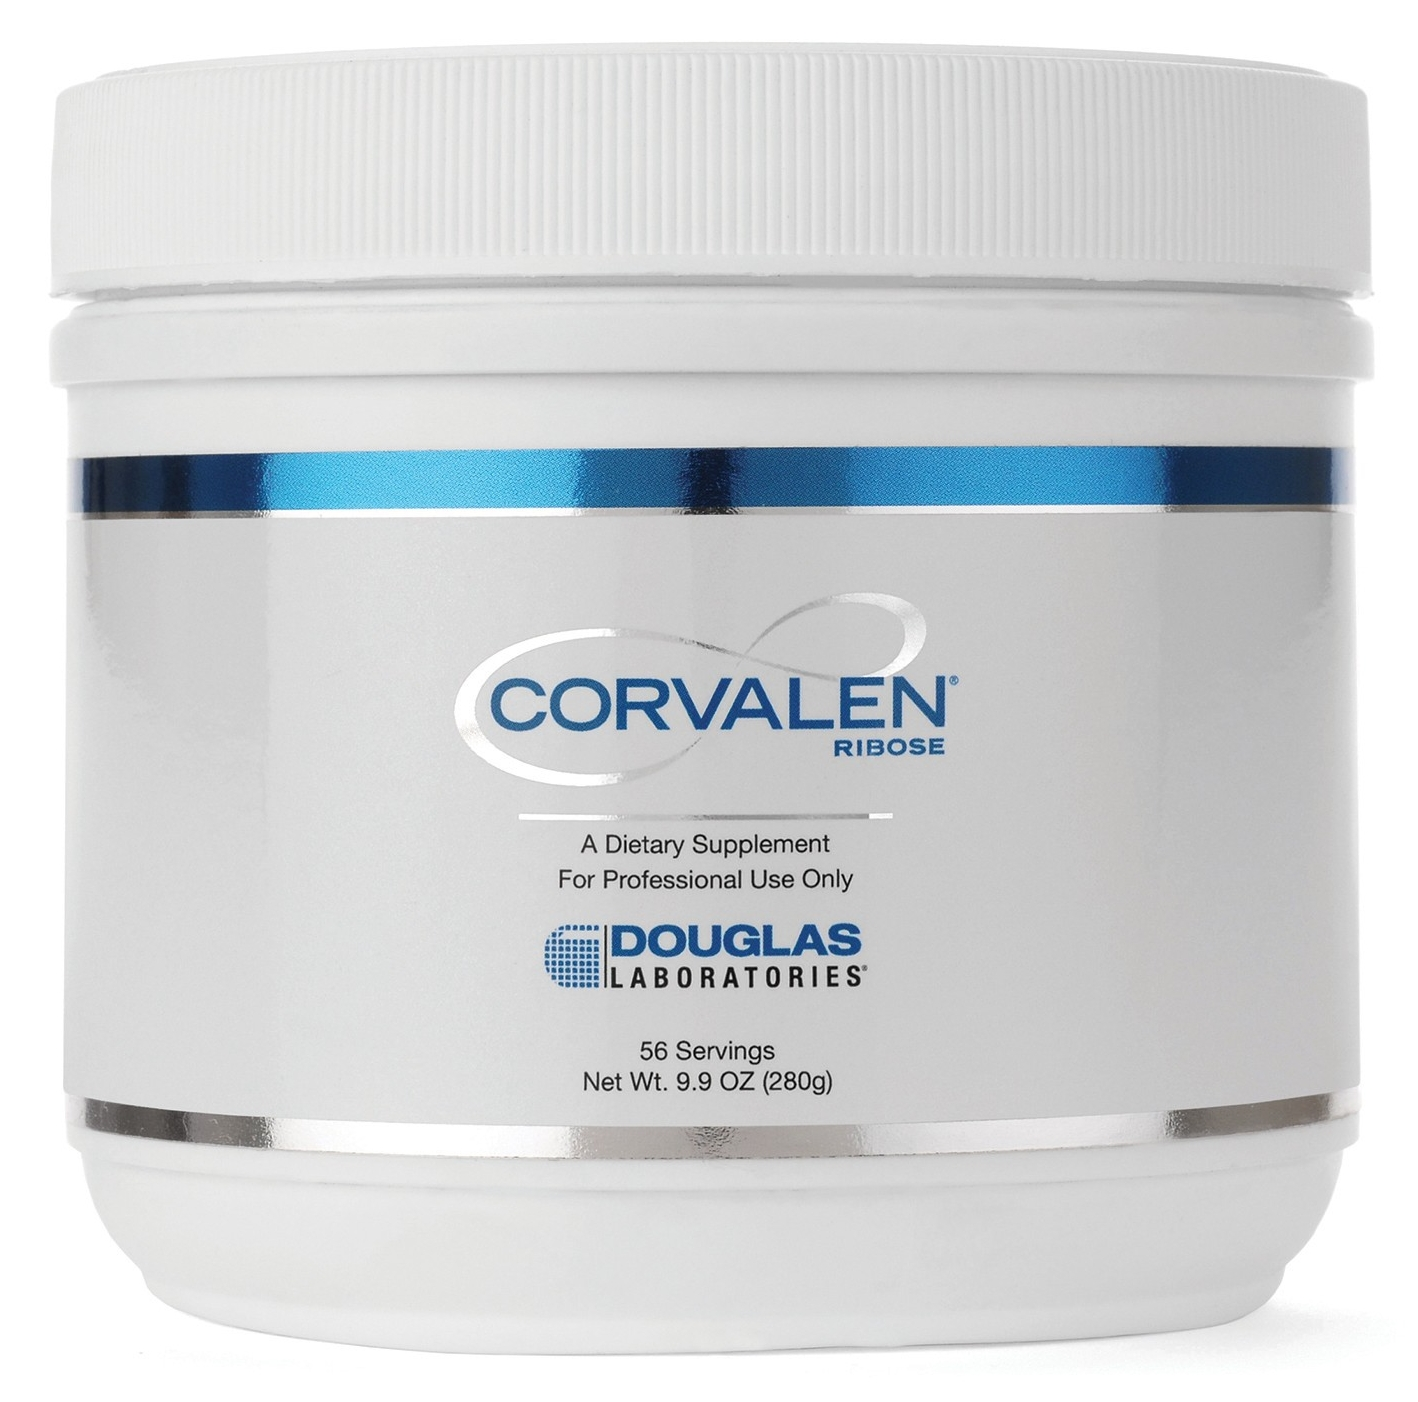 Corvalen 9.9 oz (280 g) by Douglas Labs